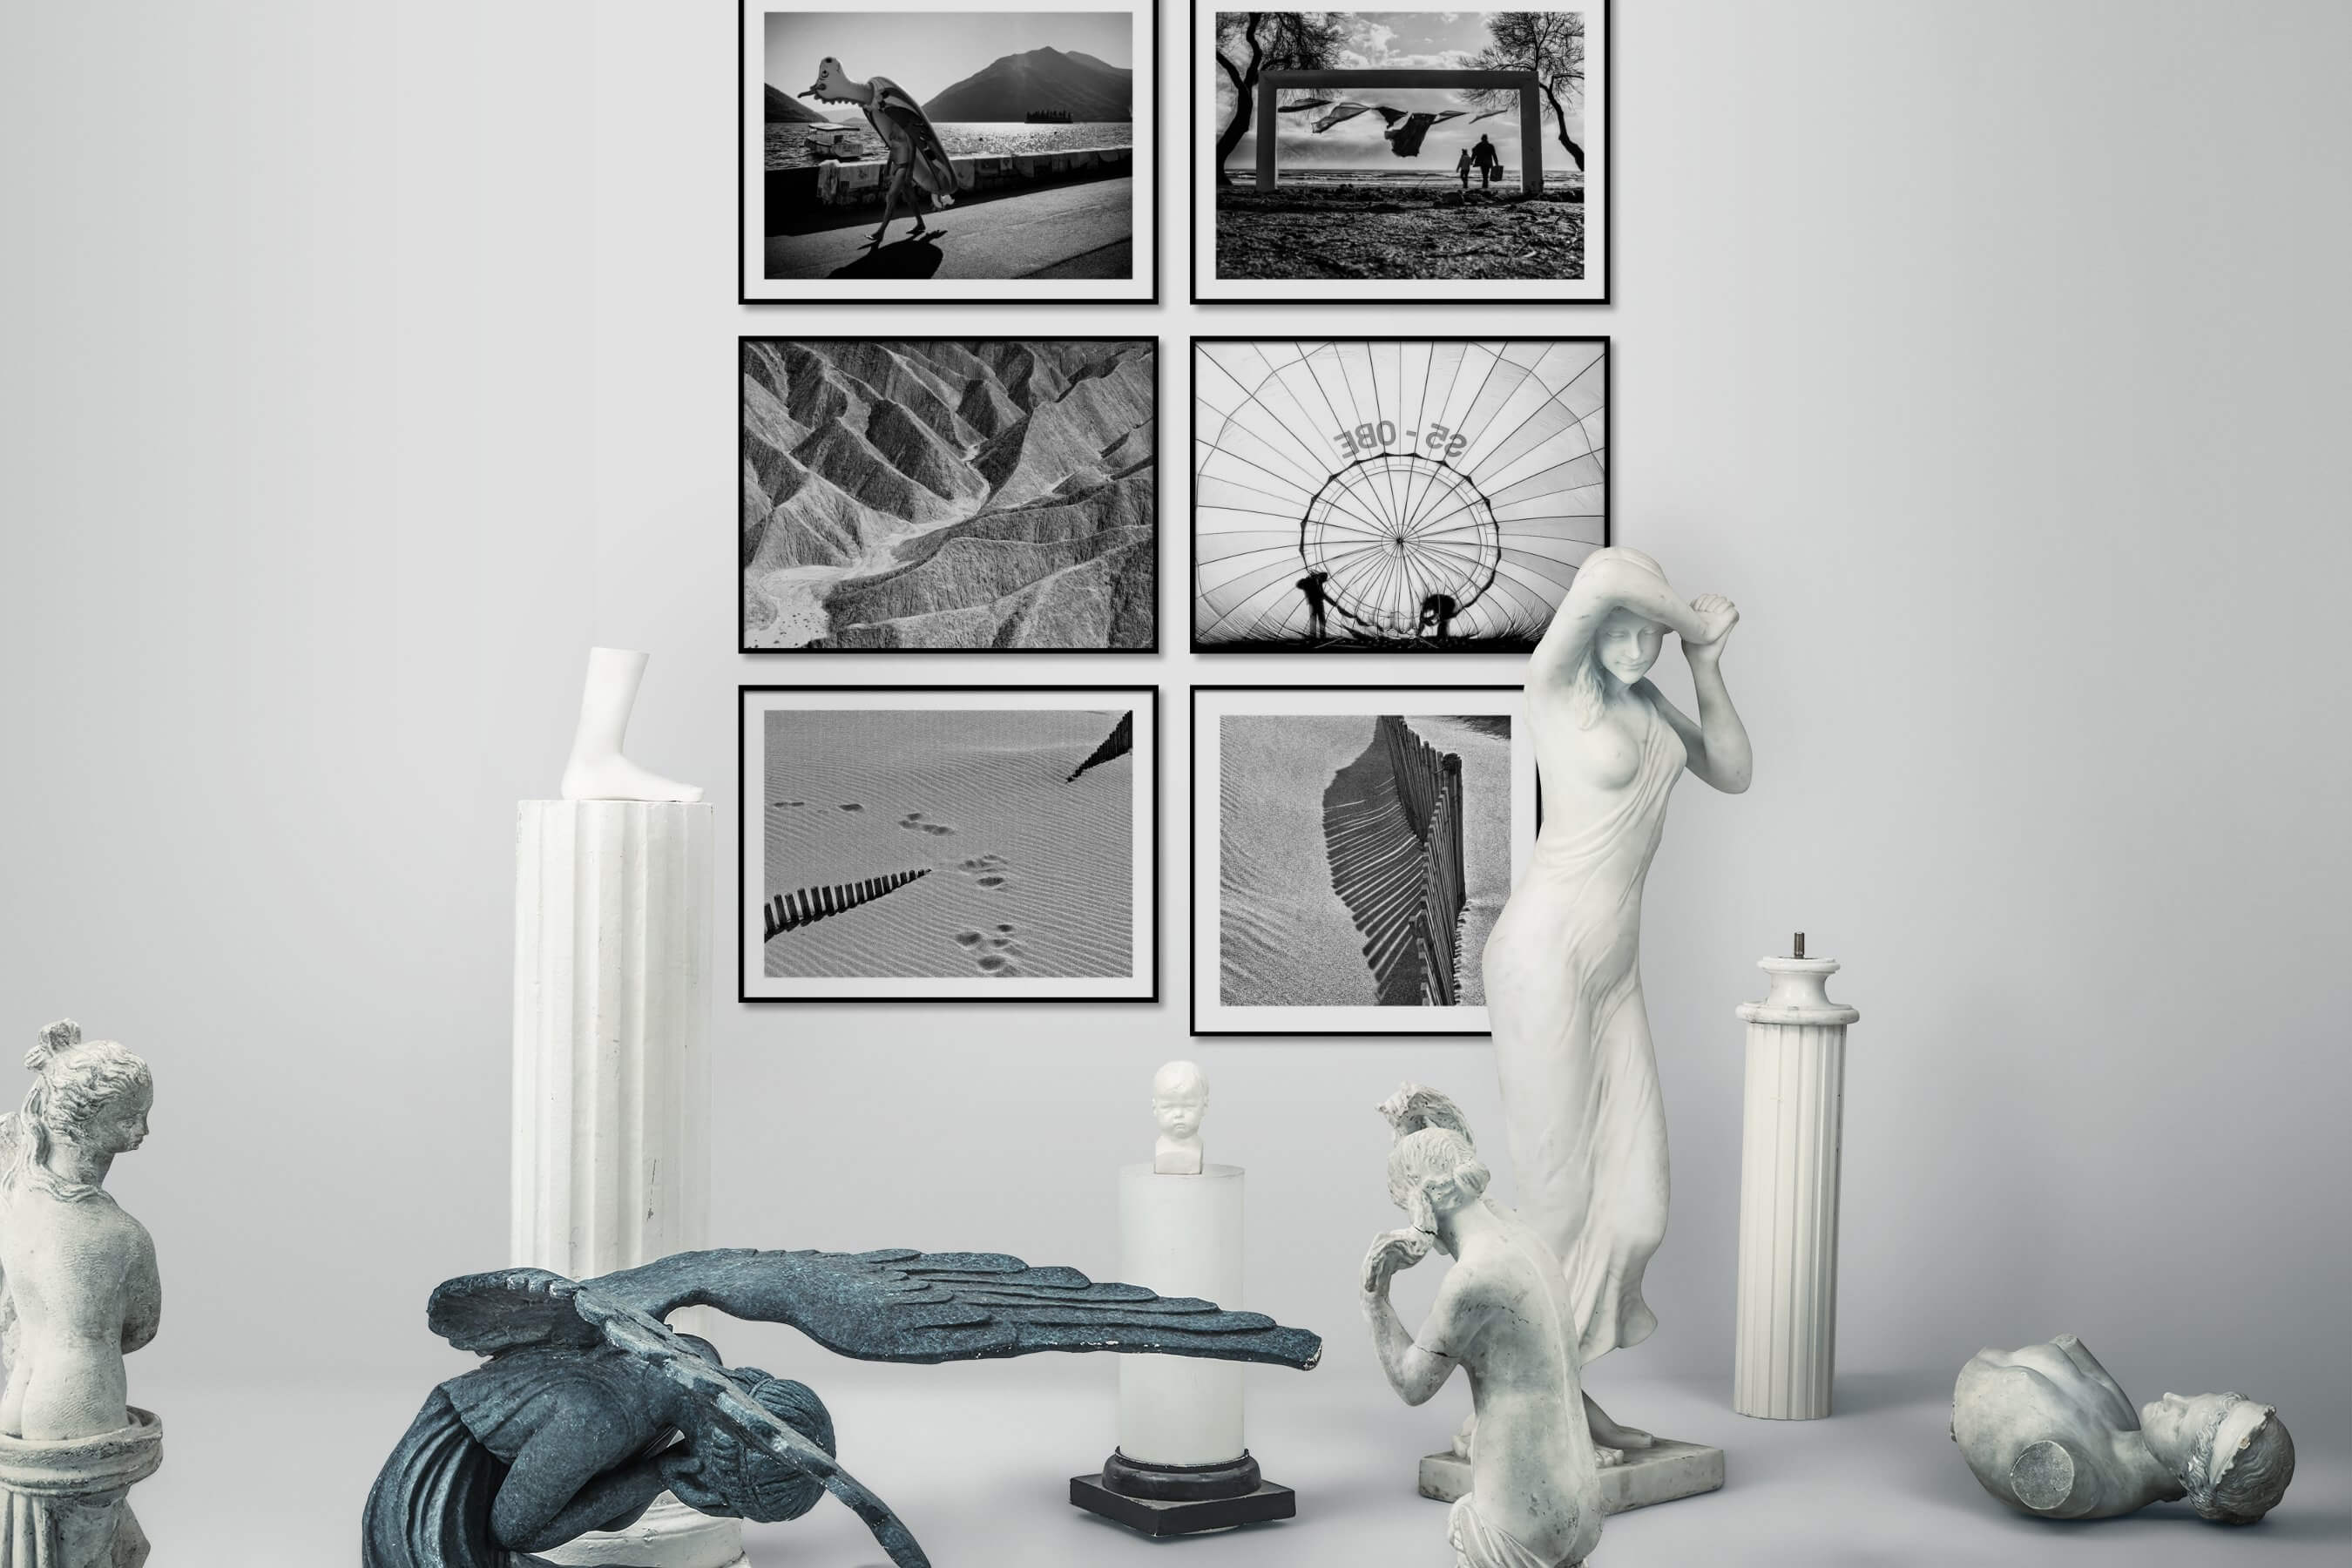 Gallery wall idea with six framed pictures arranged on a wall depicting Artsy, Black & White, Beach & Water, For the Moderate, Nature, and For the Minimalist